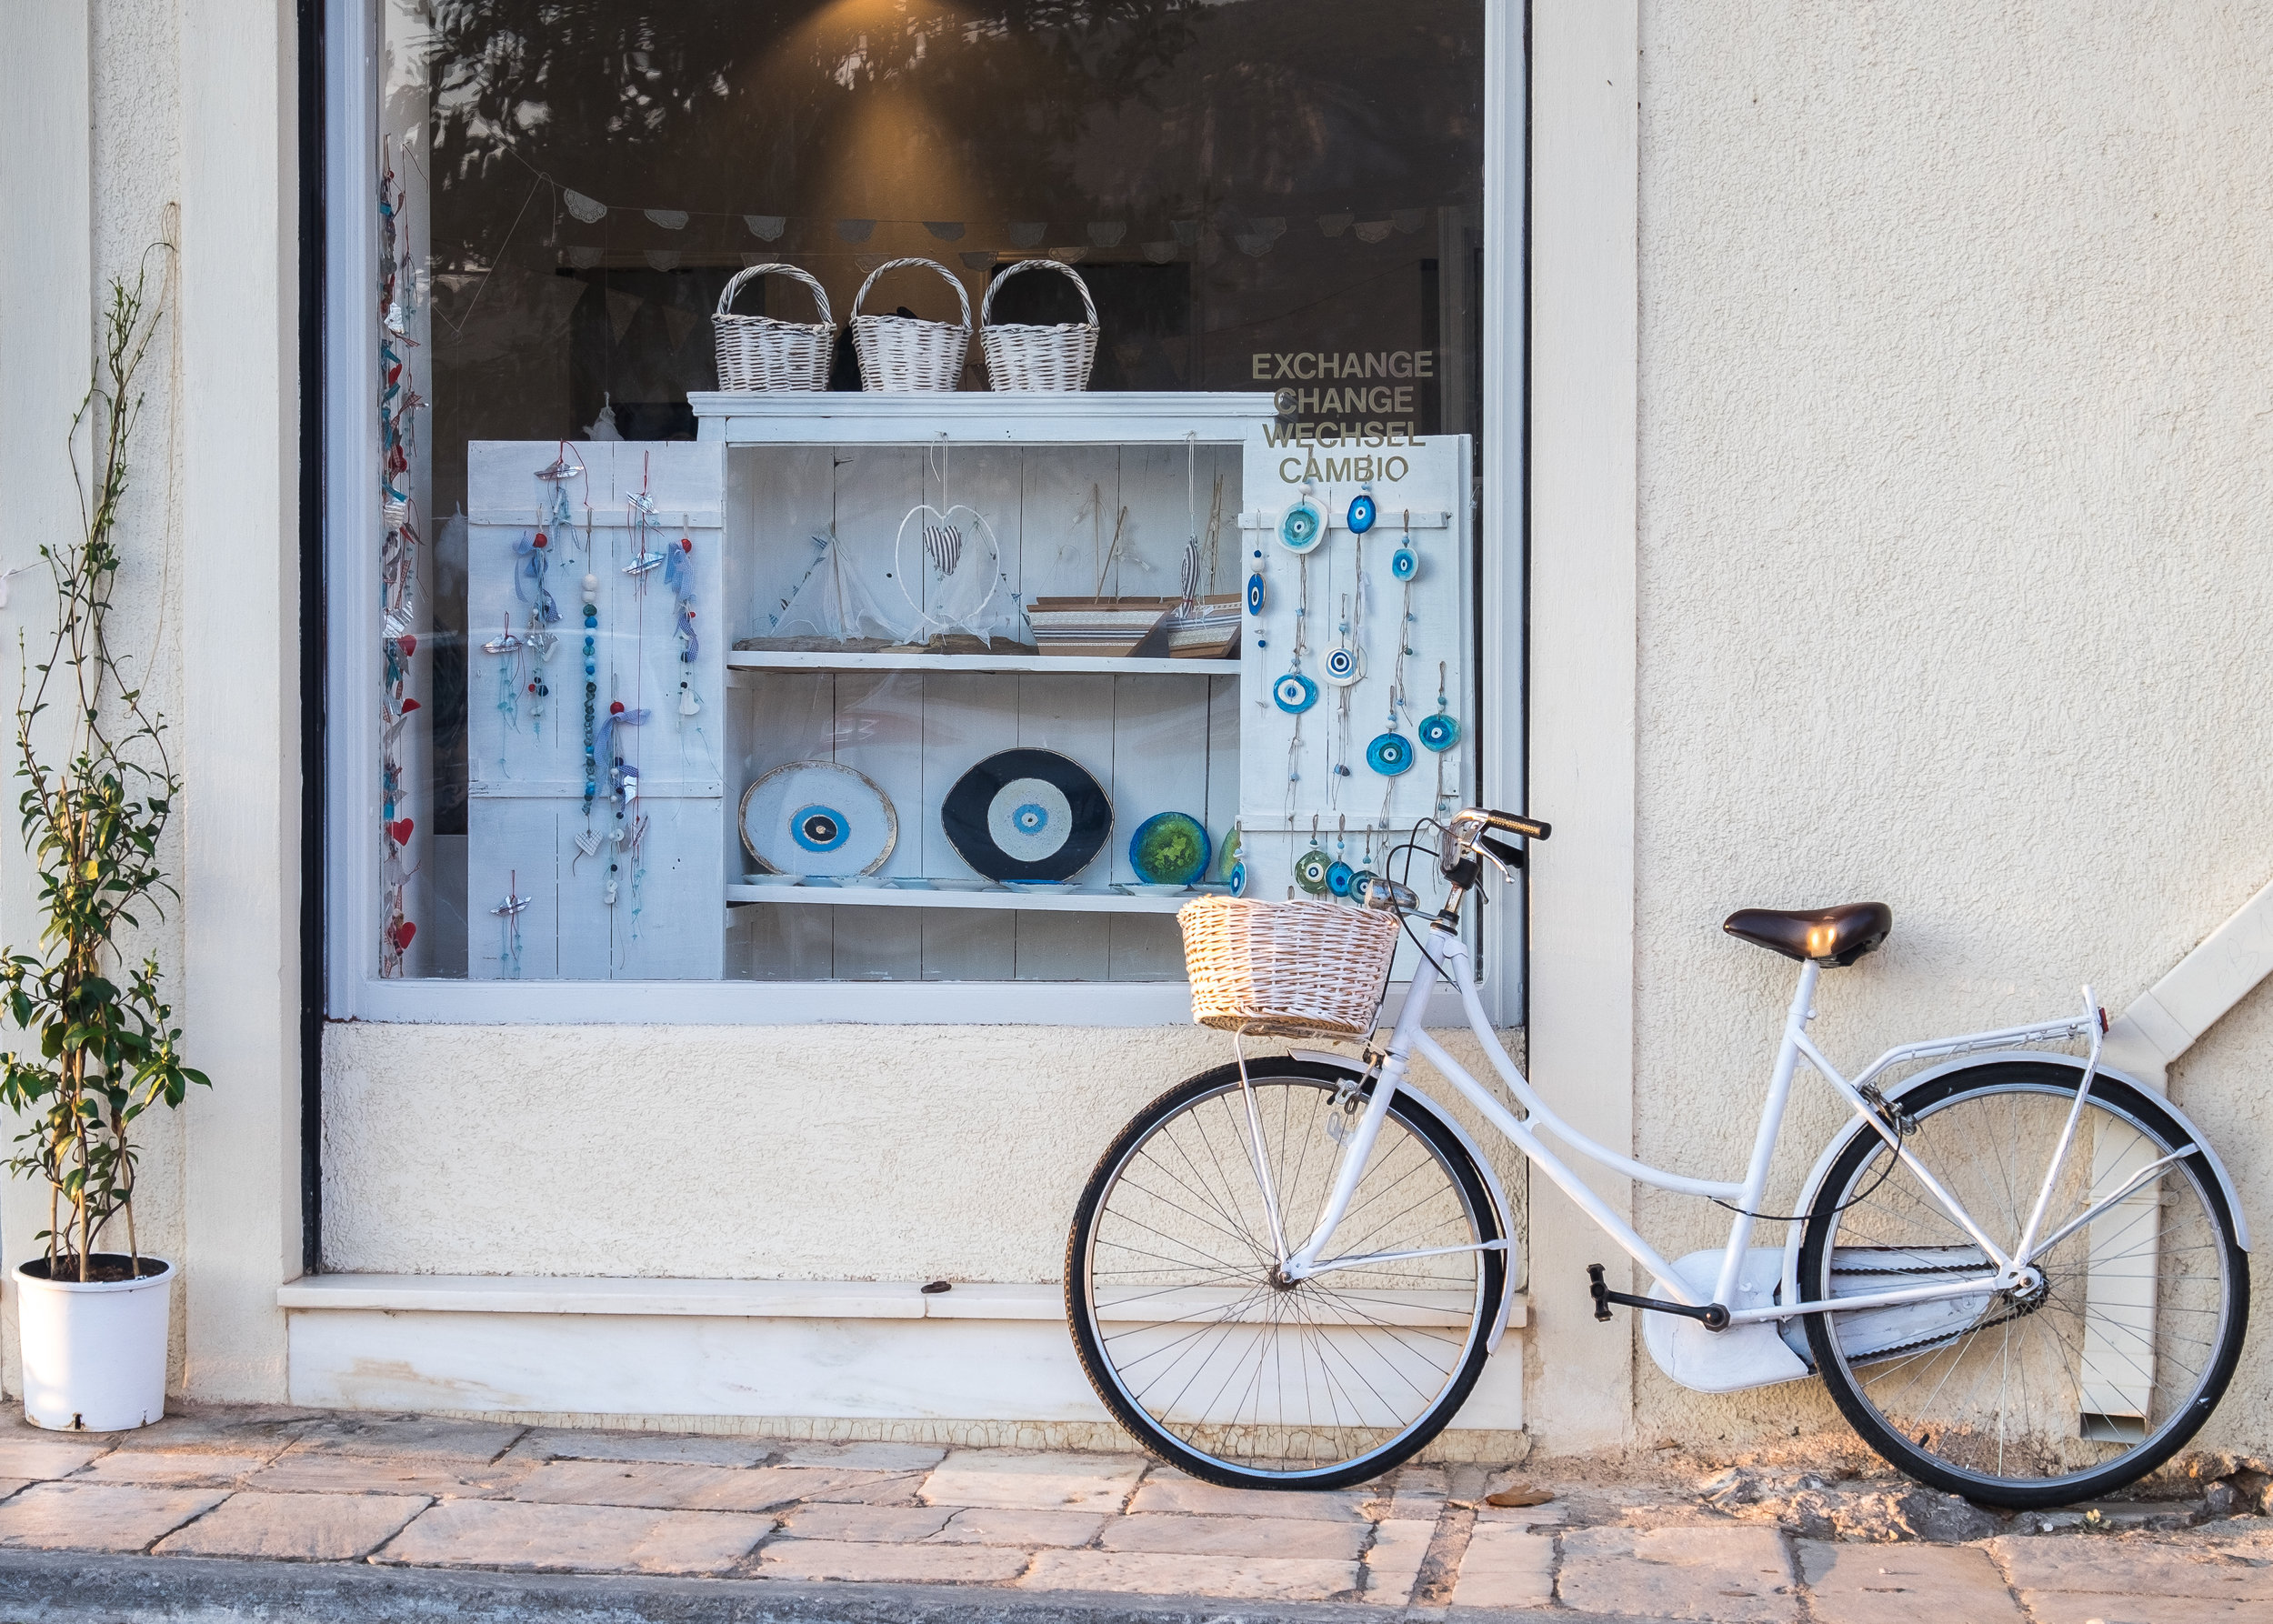 bike with basket in front of quaint storefront with baskets and pottery